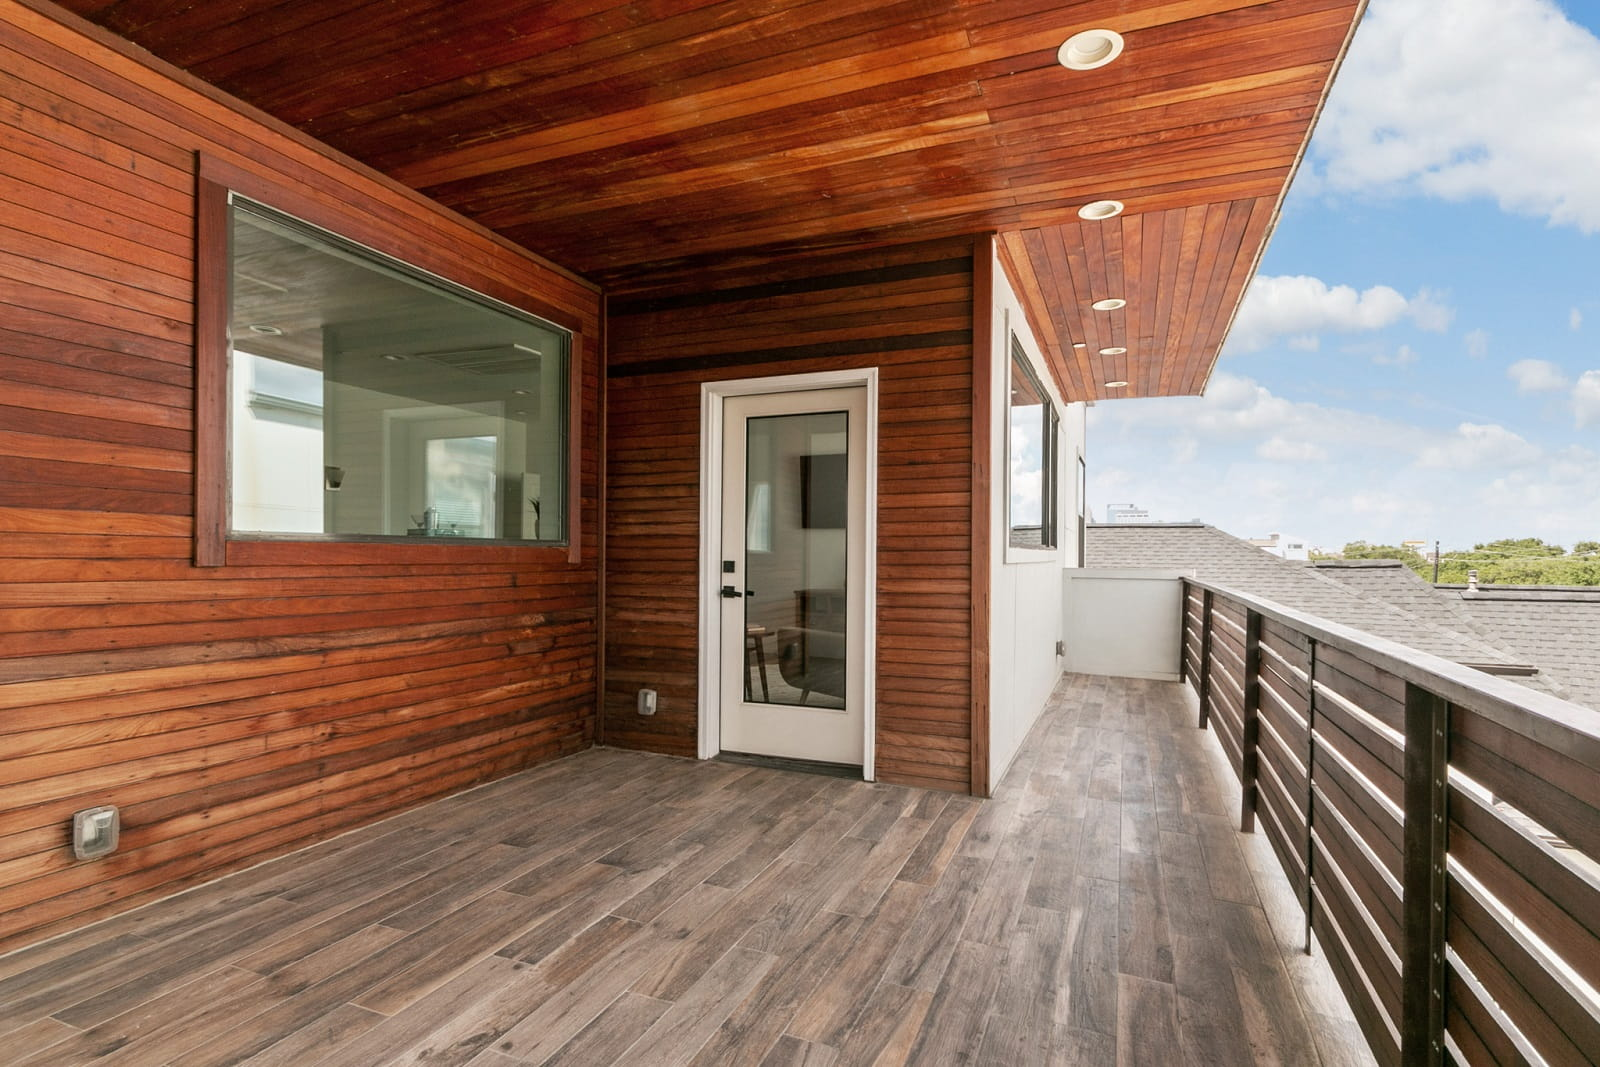 Real Estate Photographers in Houston TX - Balcony View